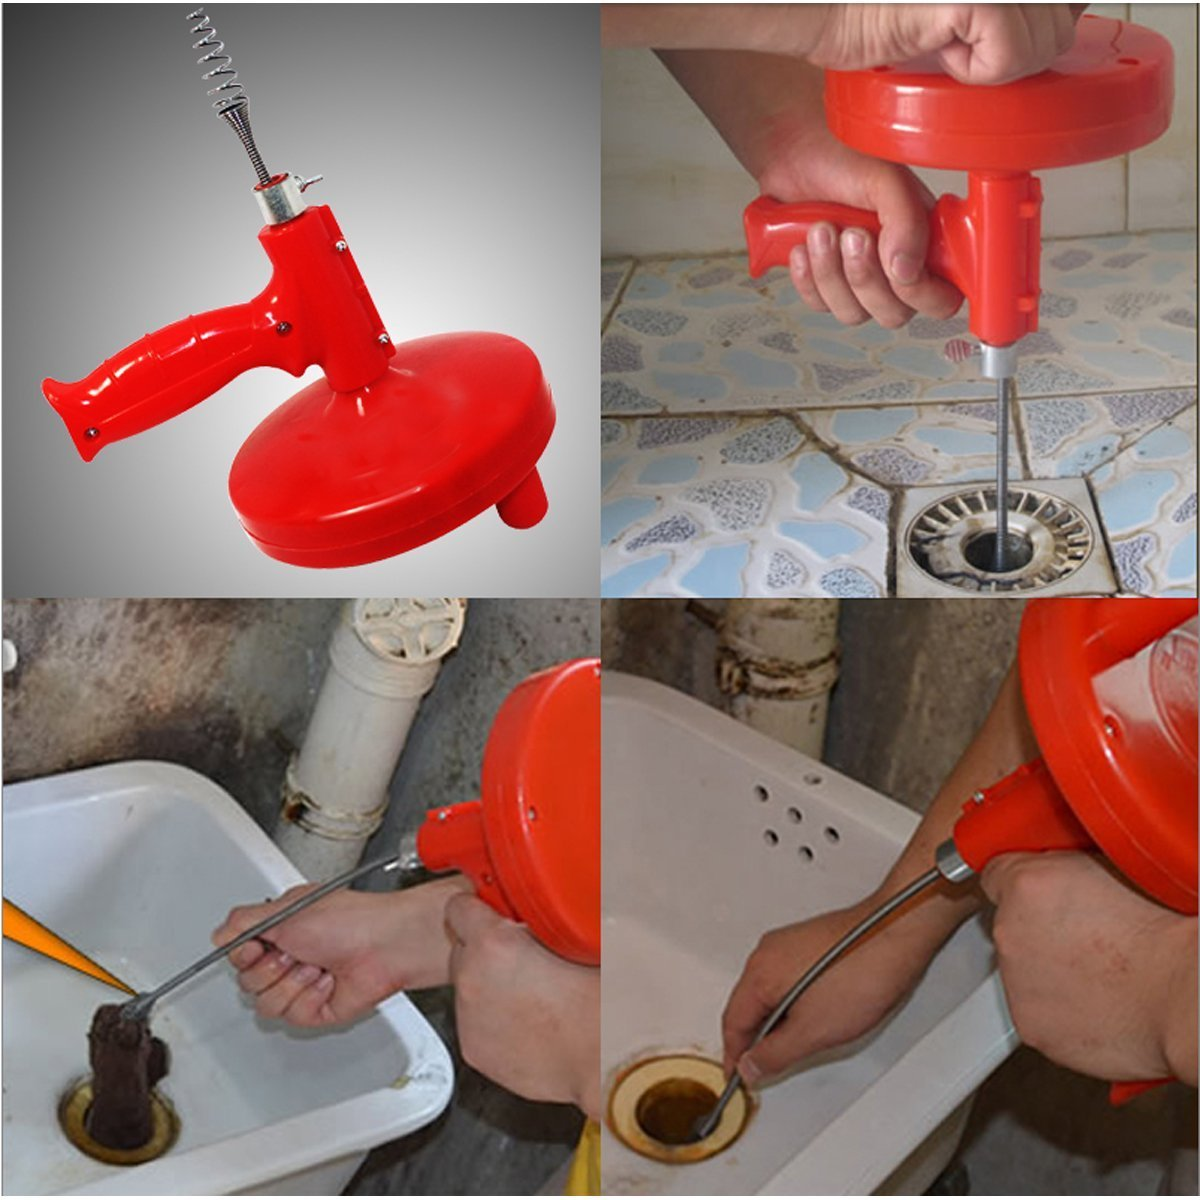 Pacii Pipe Cleaners Spin Thru Drain Auger Conduit Toilet Sewer Cleaner Closet Drum Auger Tool//Drain Snake Cleaner Clog Sink Cleaning Plumbing Plumber Pro Opener With 1//4-Inch by 16-Feet Cable